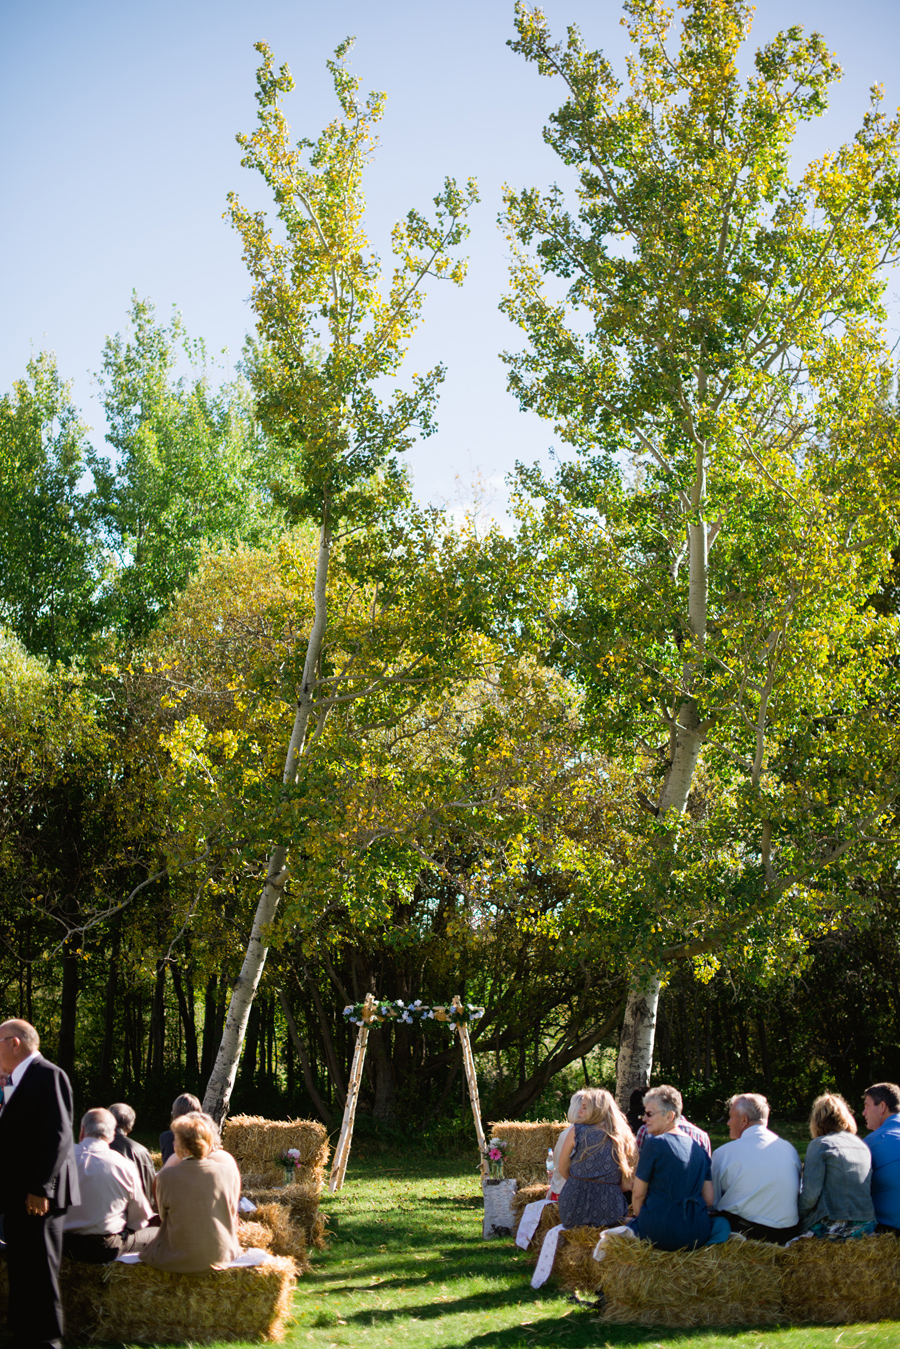 bbcollective_yeg_2016_dawniaandjeffrey_wedding_photography047.jpg